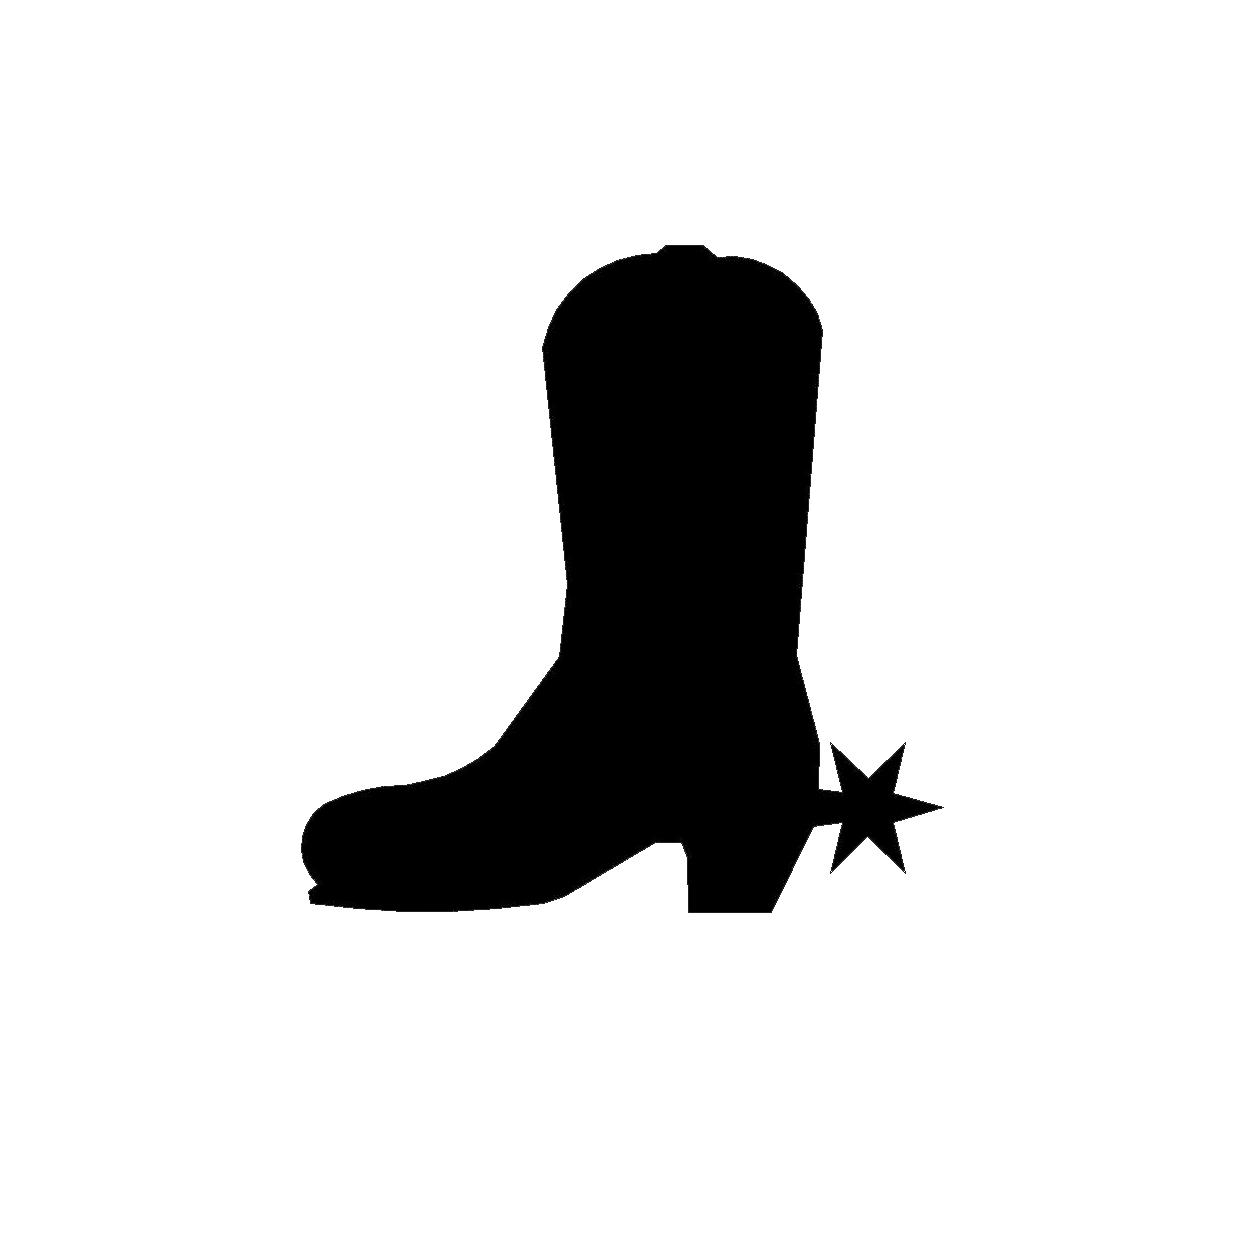 Hd cute cowboy boots clipart boot silhouette clip art image.